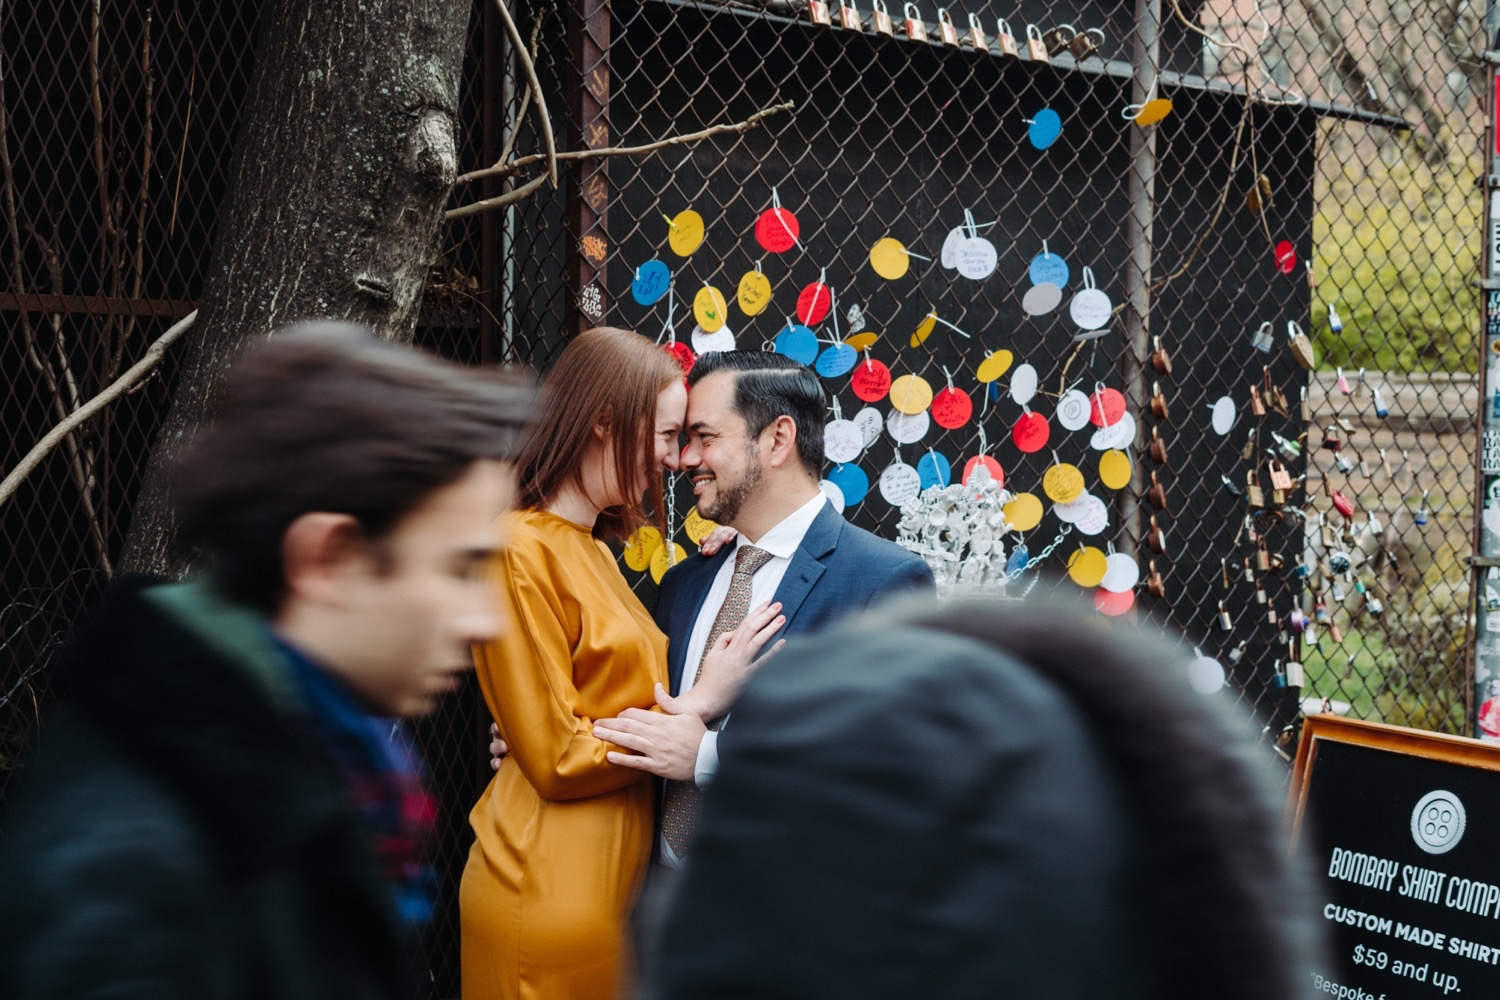 SOHO Engagement Session, Nolita Engagement Session, SOHO NYC Engagement Session, SOHO Engagement pictures, Nolita Engagement Pictures, manhattan engagement photographer, NYC Engagement photographer